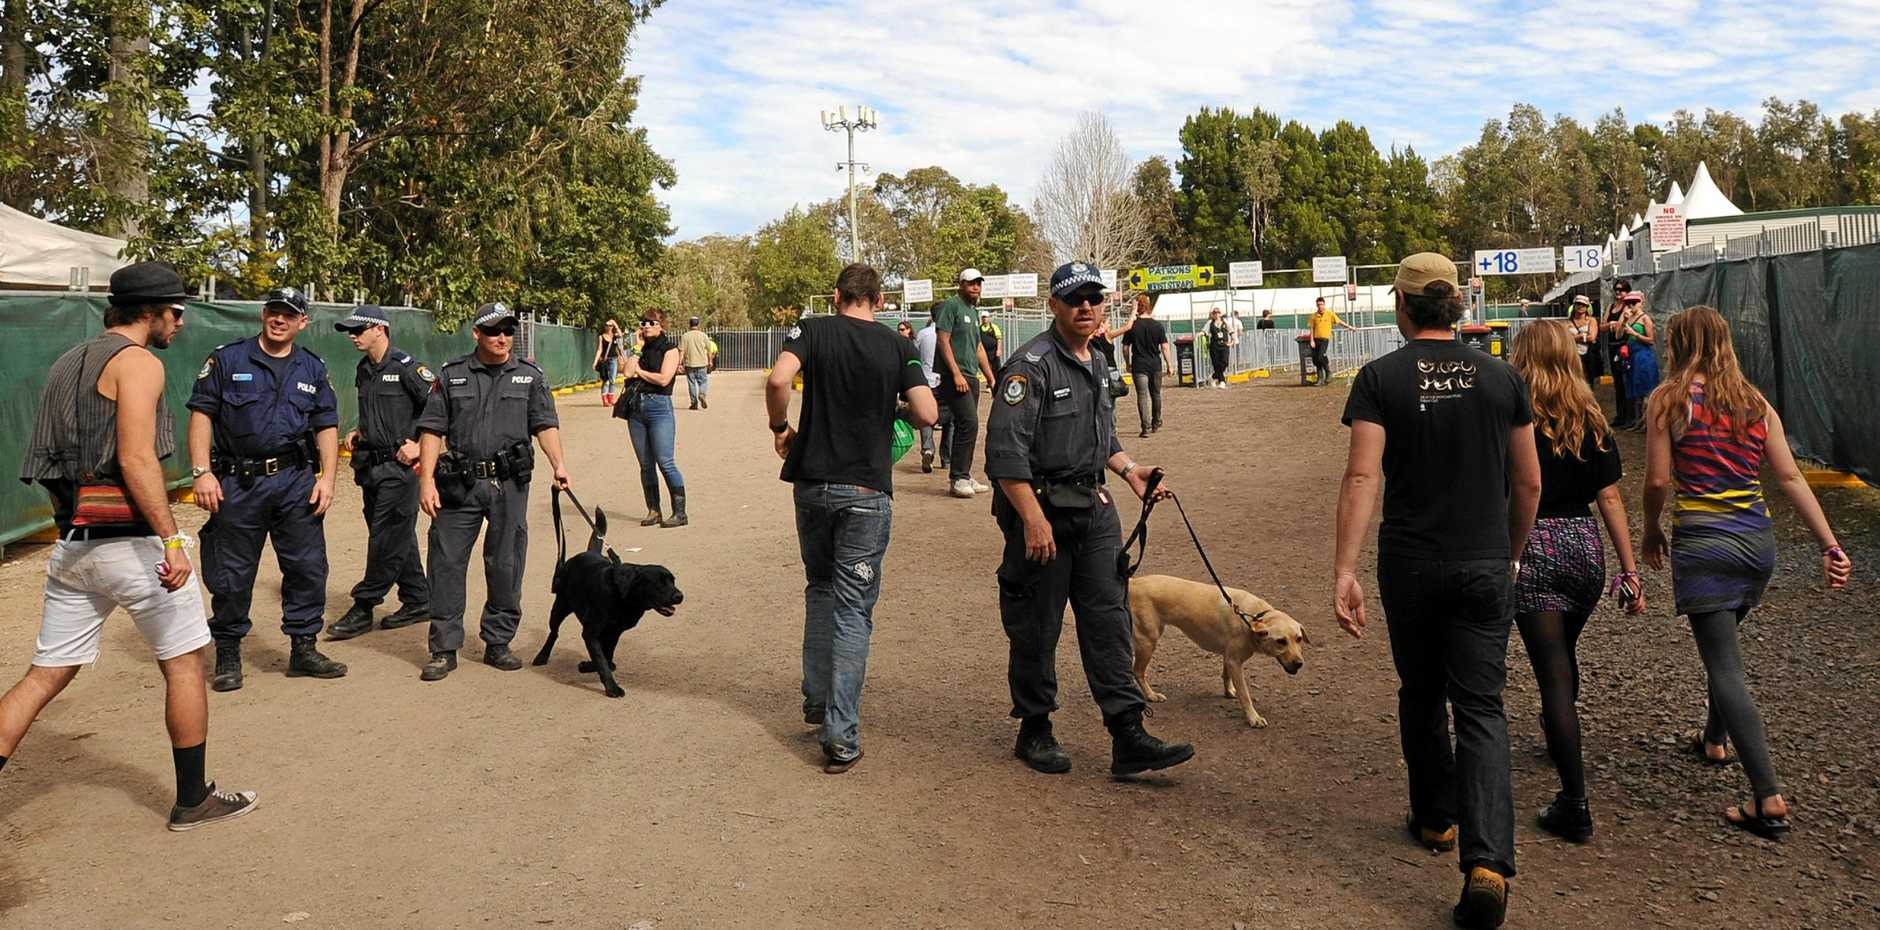 Police sniffer dogs at Splendour in the grass festival.  photo David Nielsen/The Northern Star